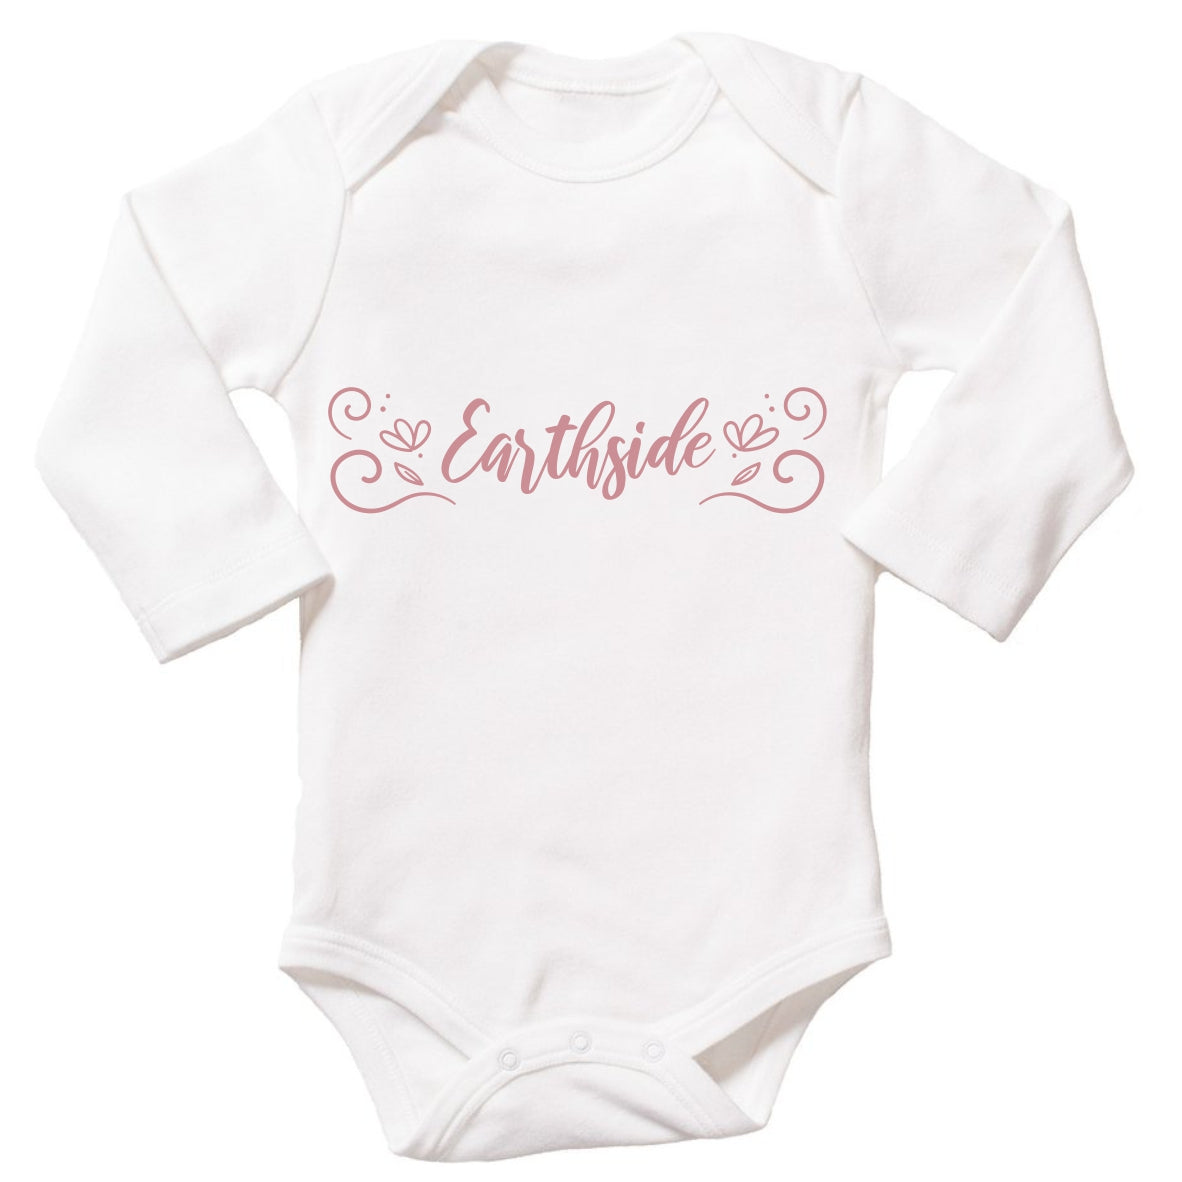 Gift Box Baby Grows (4654973419656) (4842499932296)